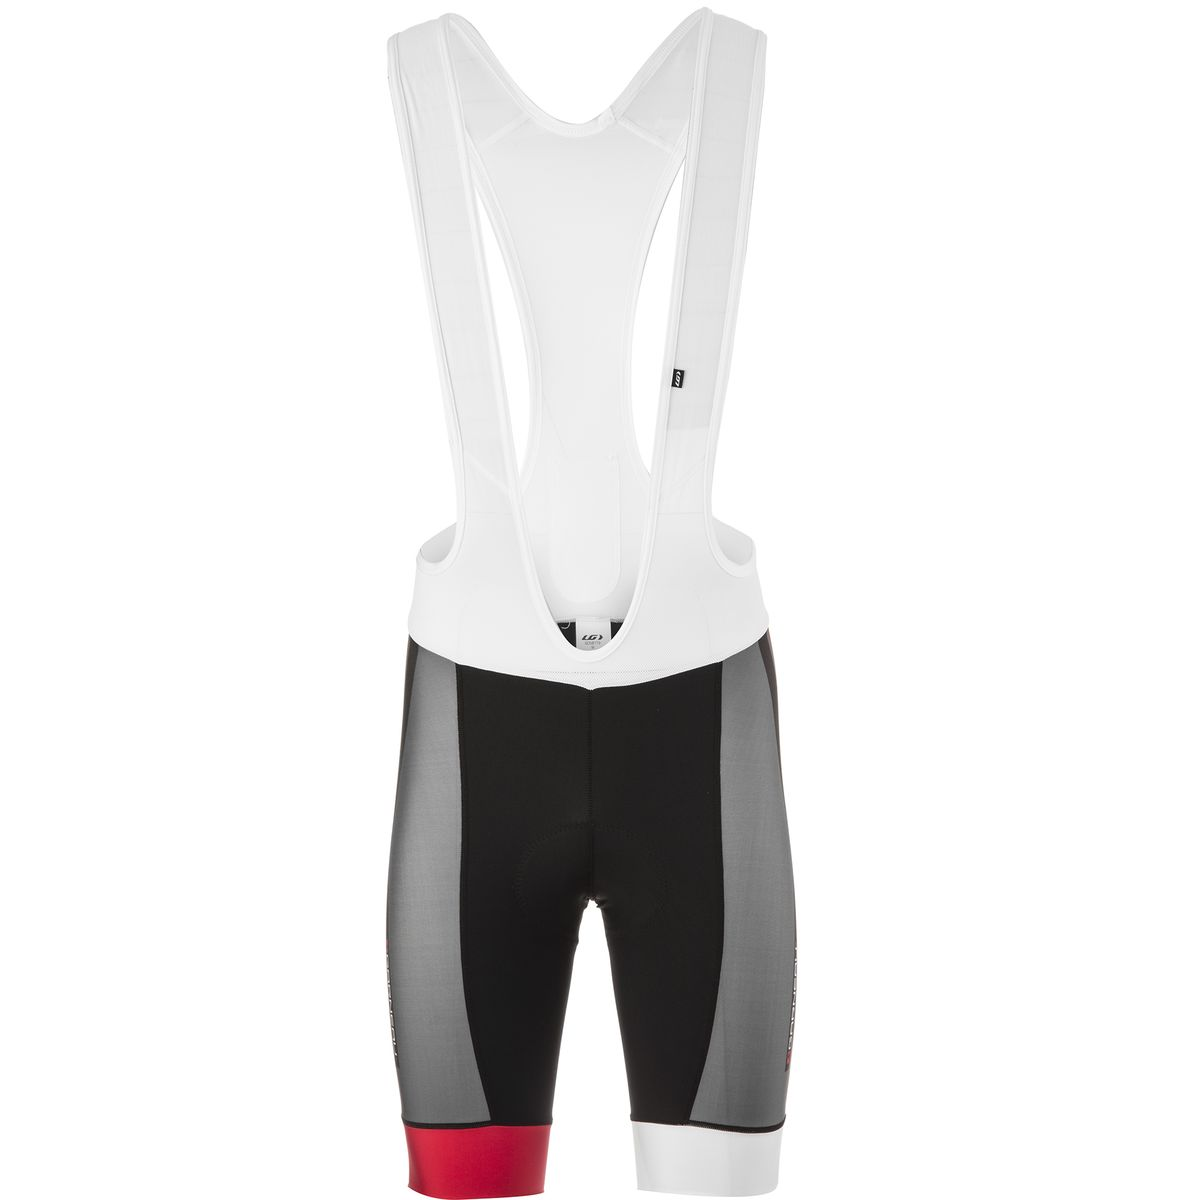 Louis Garneau Equipe 1 6 Bib Short Men S Competitive